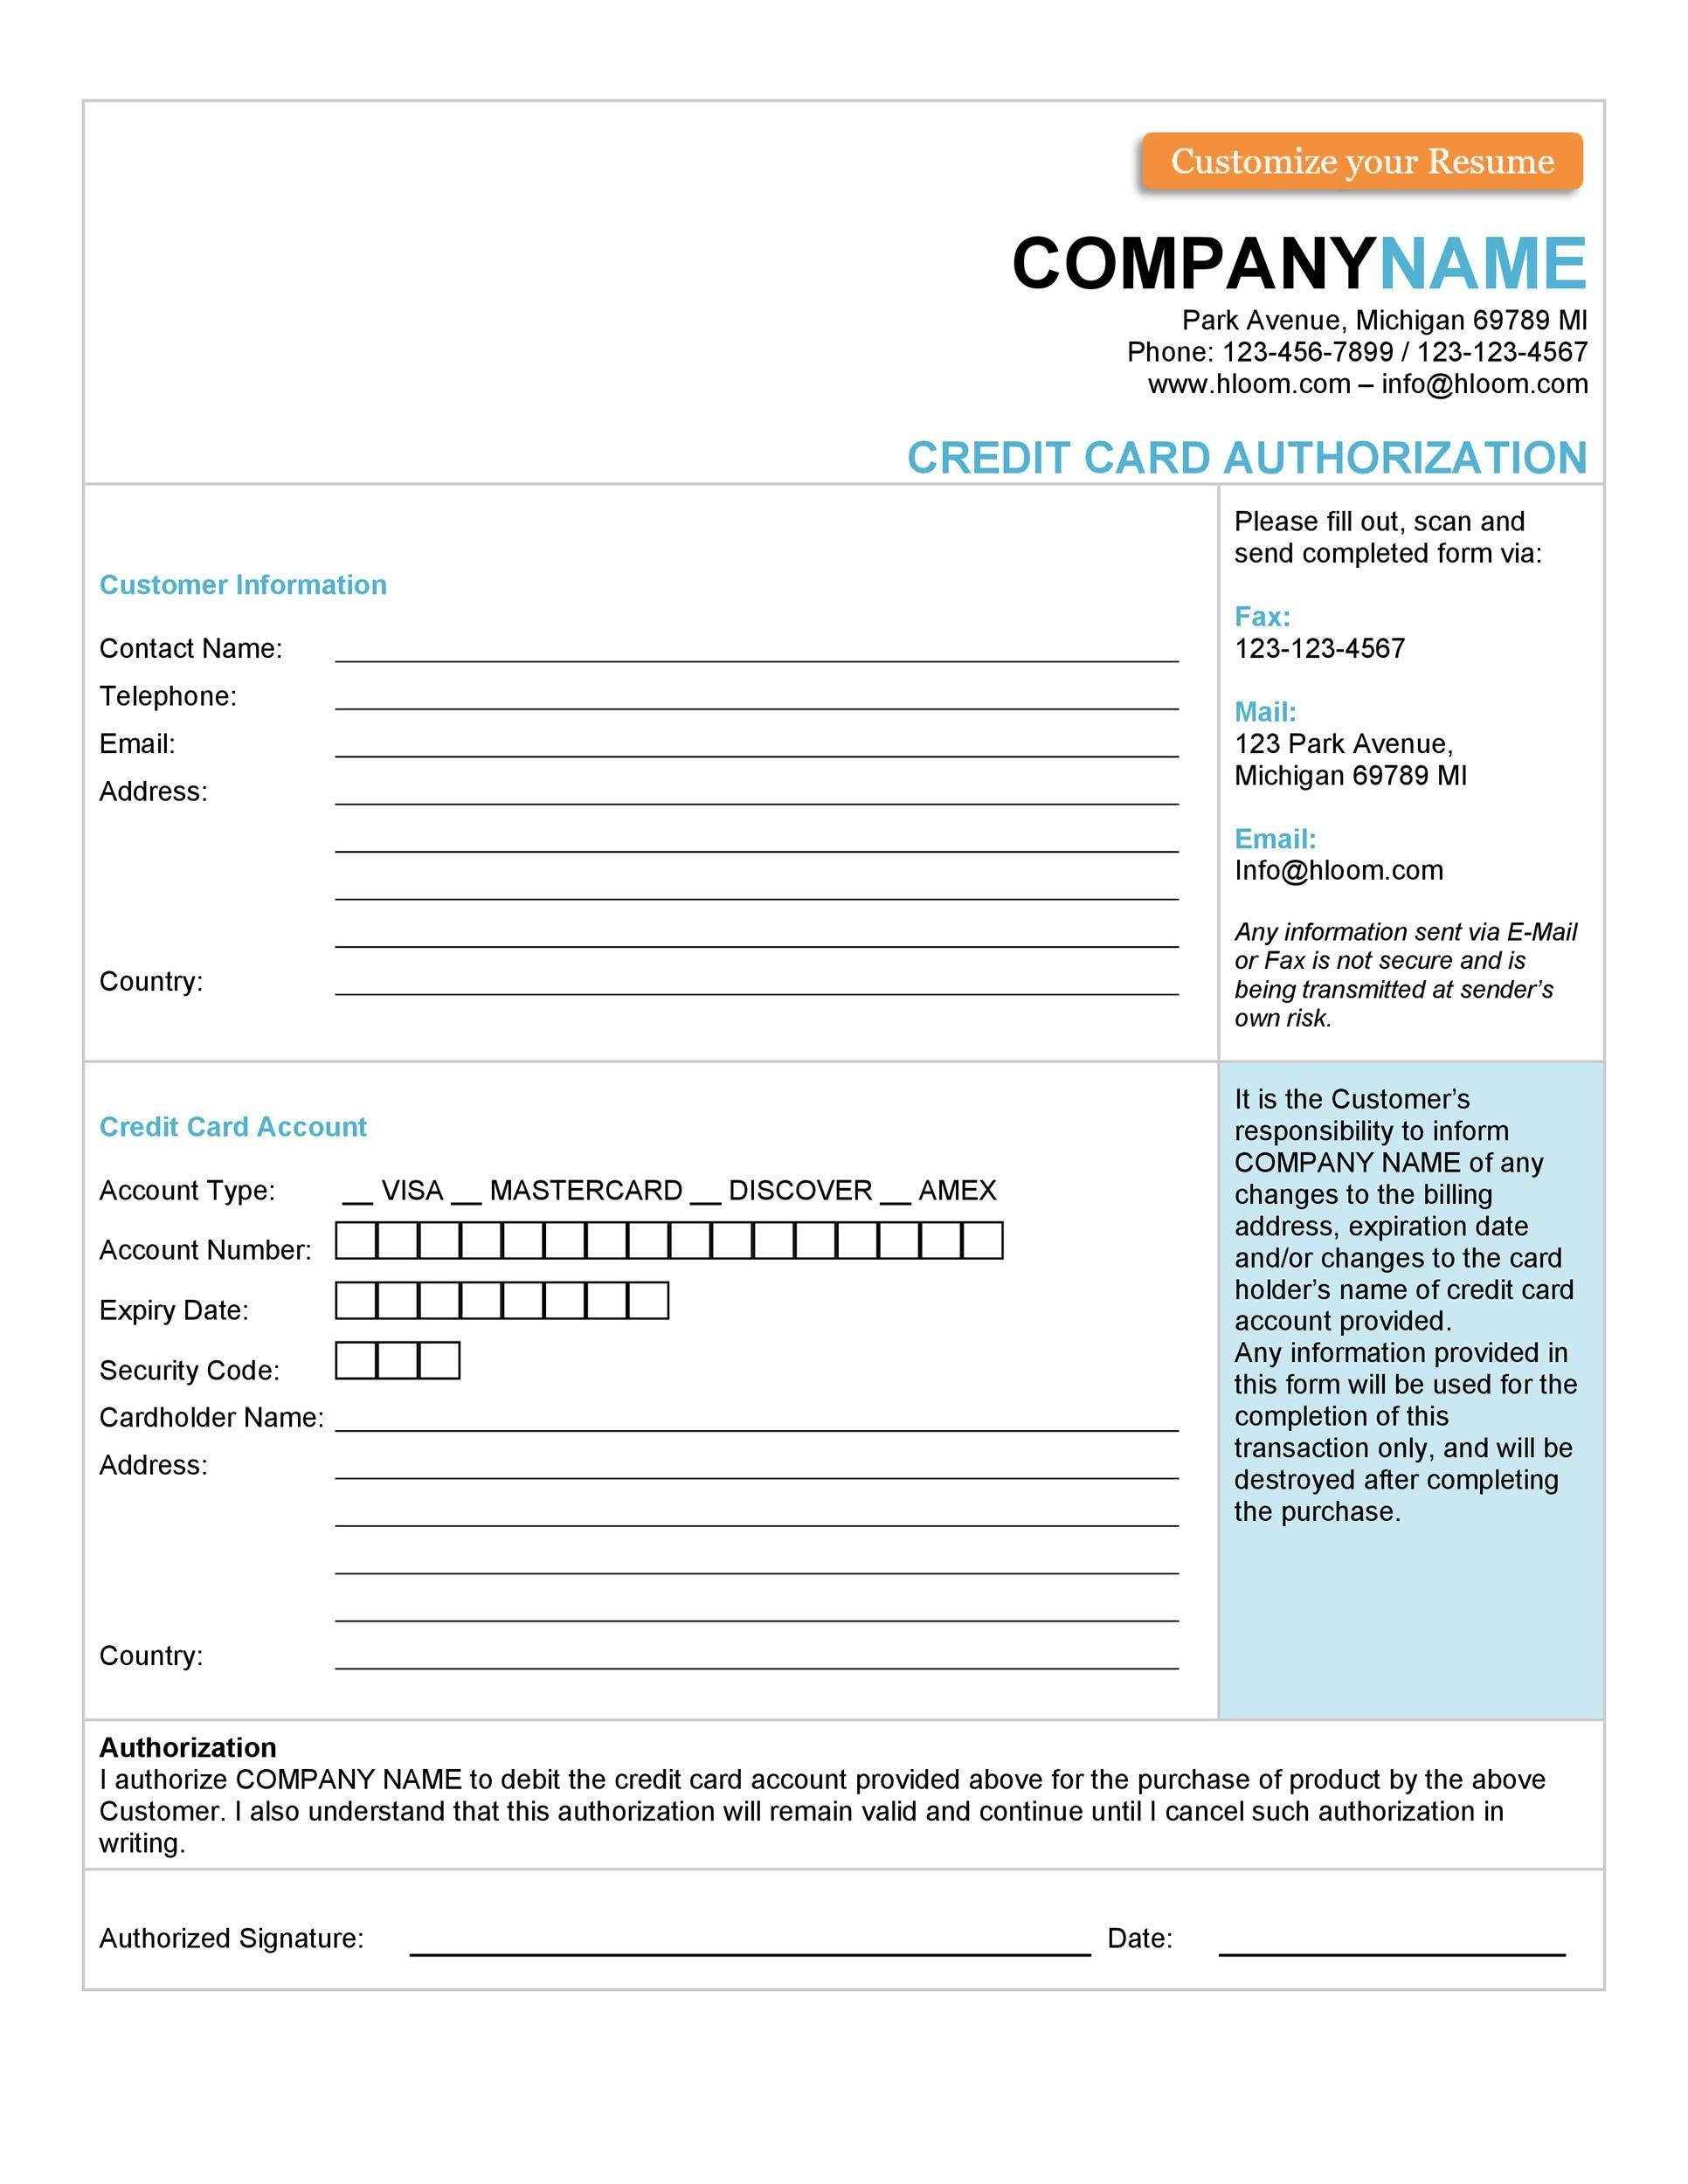 Free credit card authorization form template 23